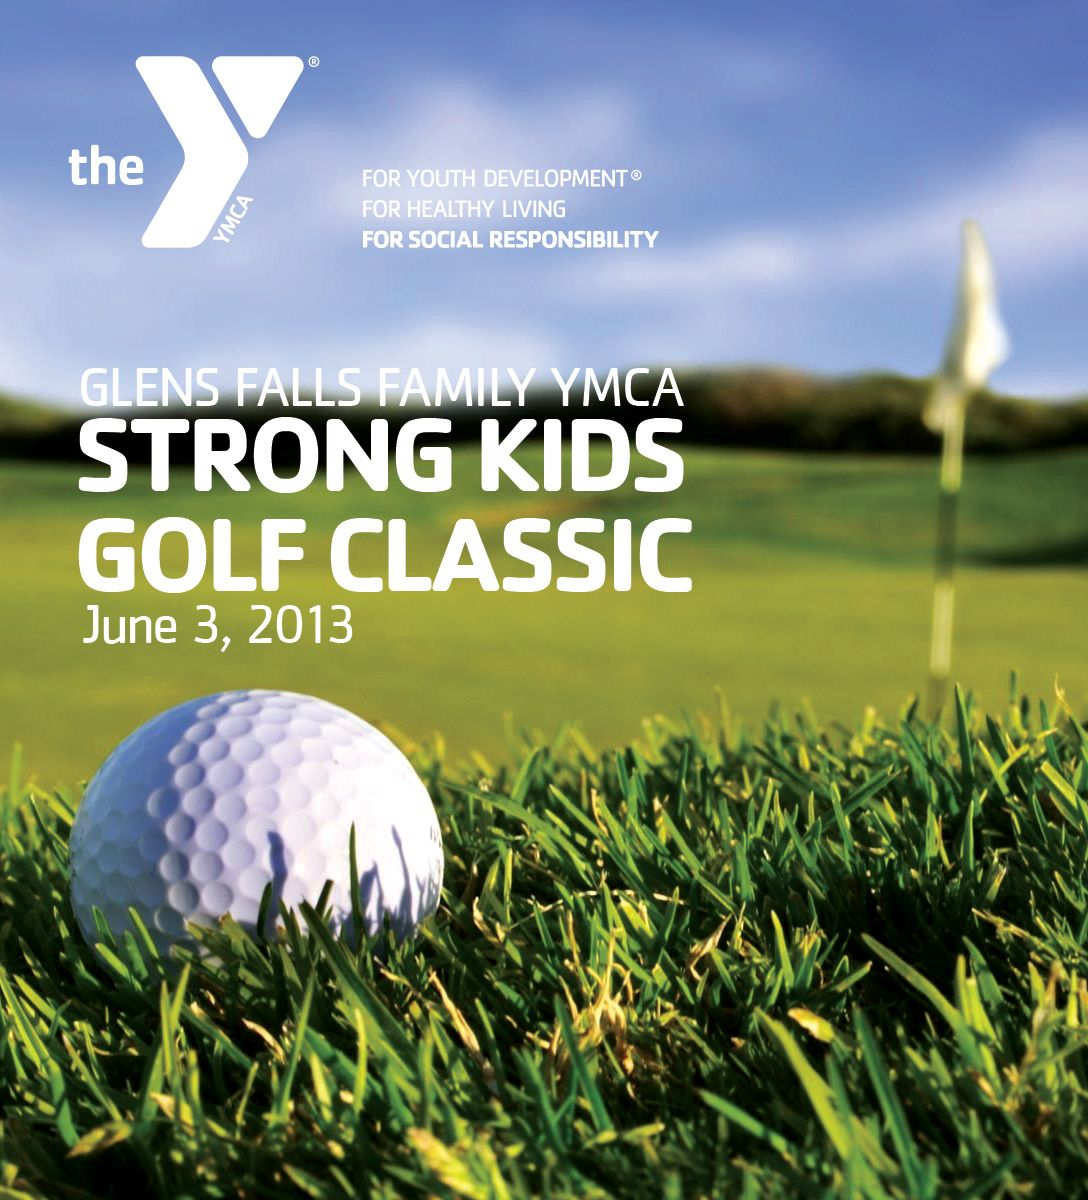 Get your foursome together benefits the strong kids